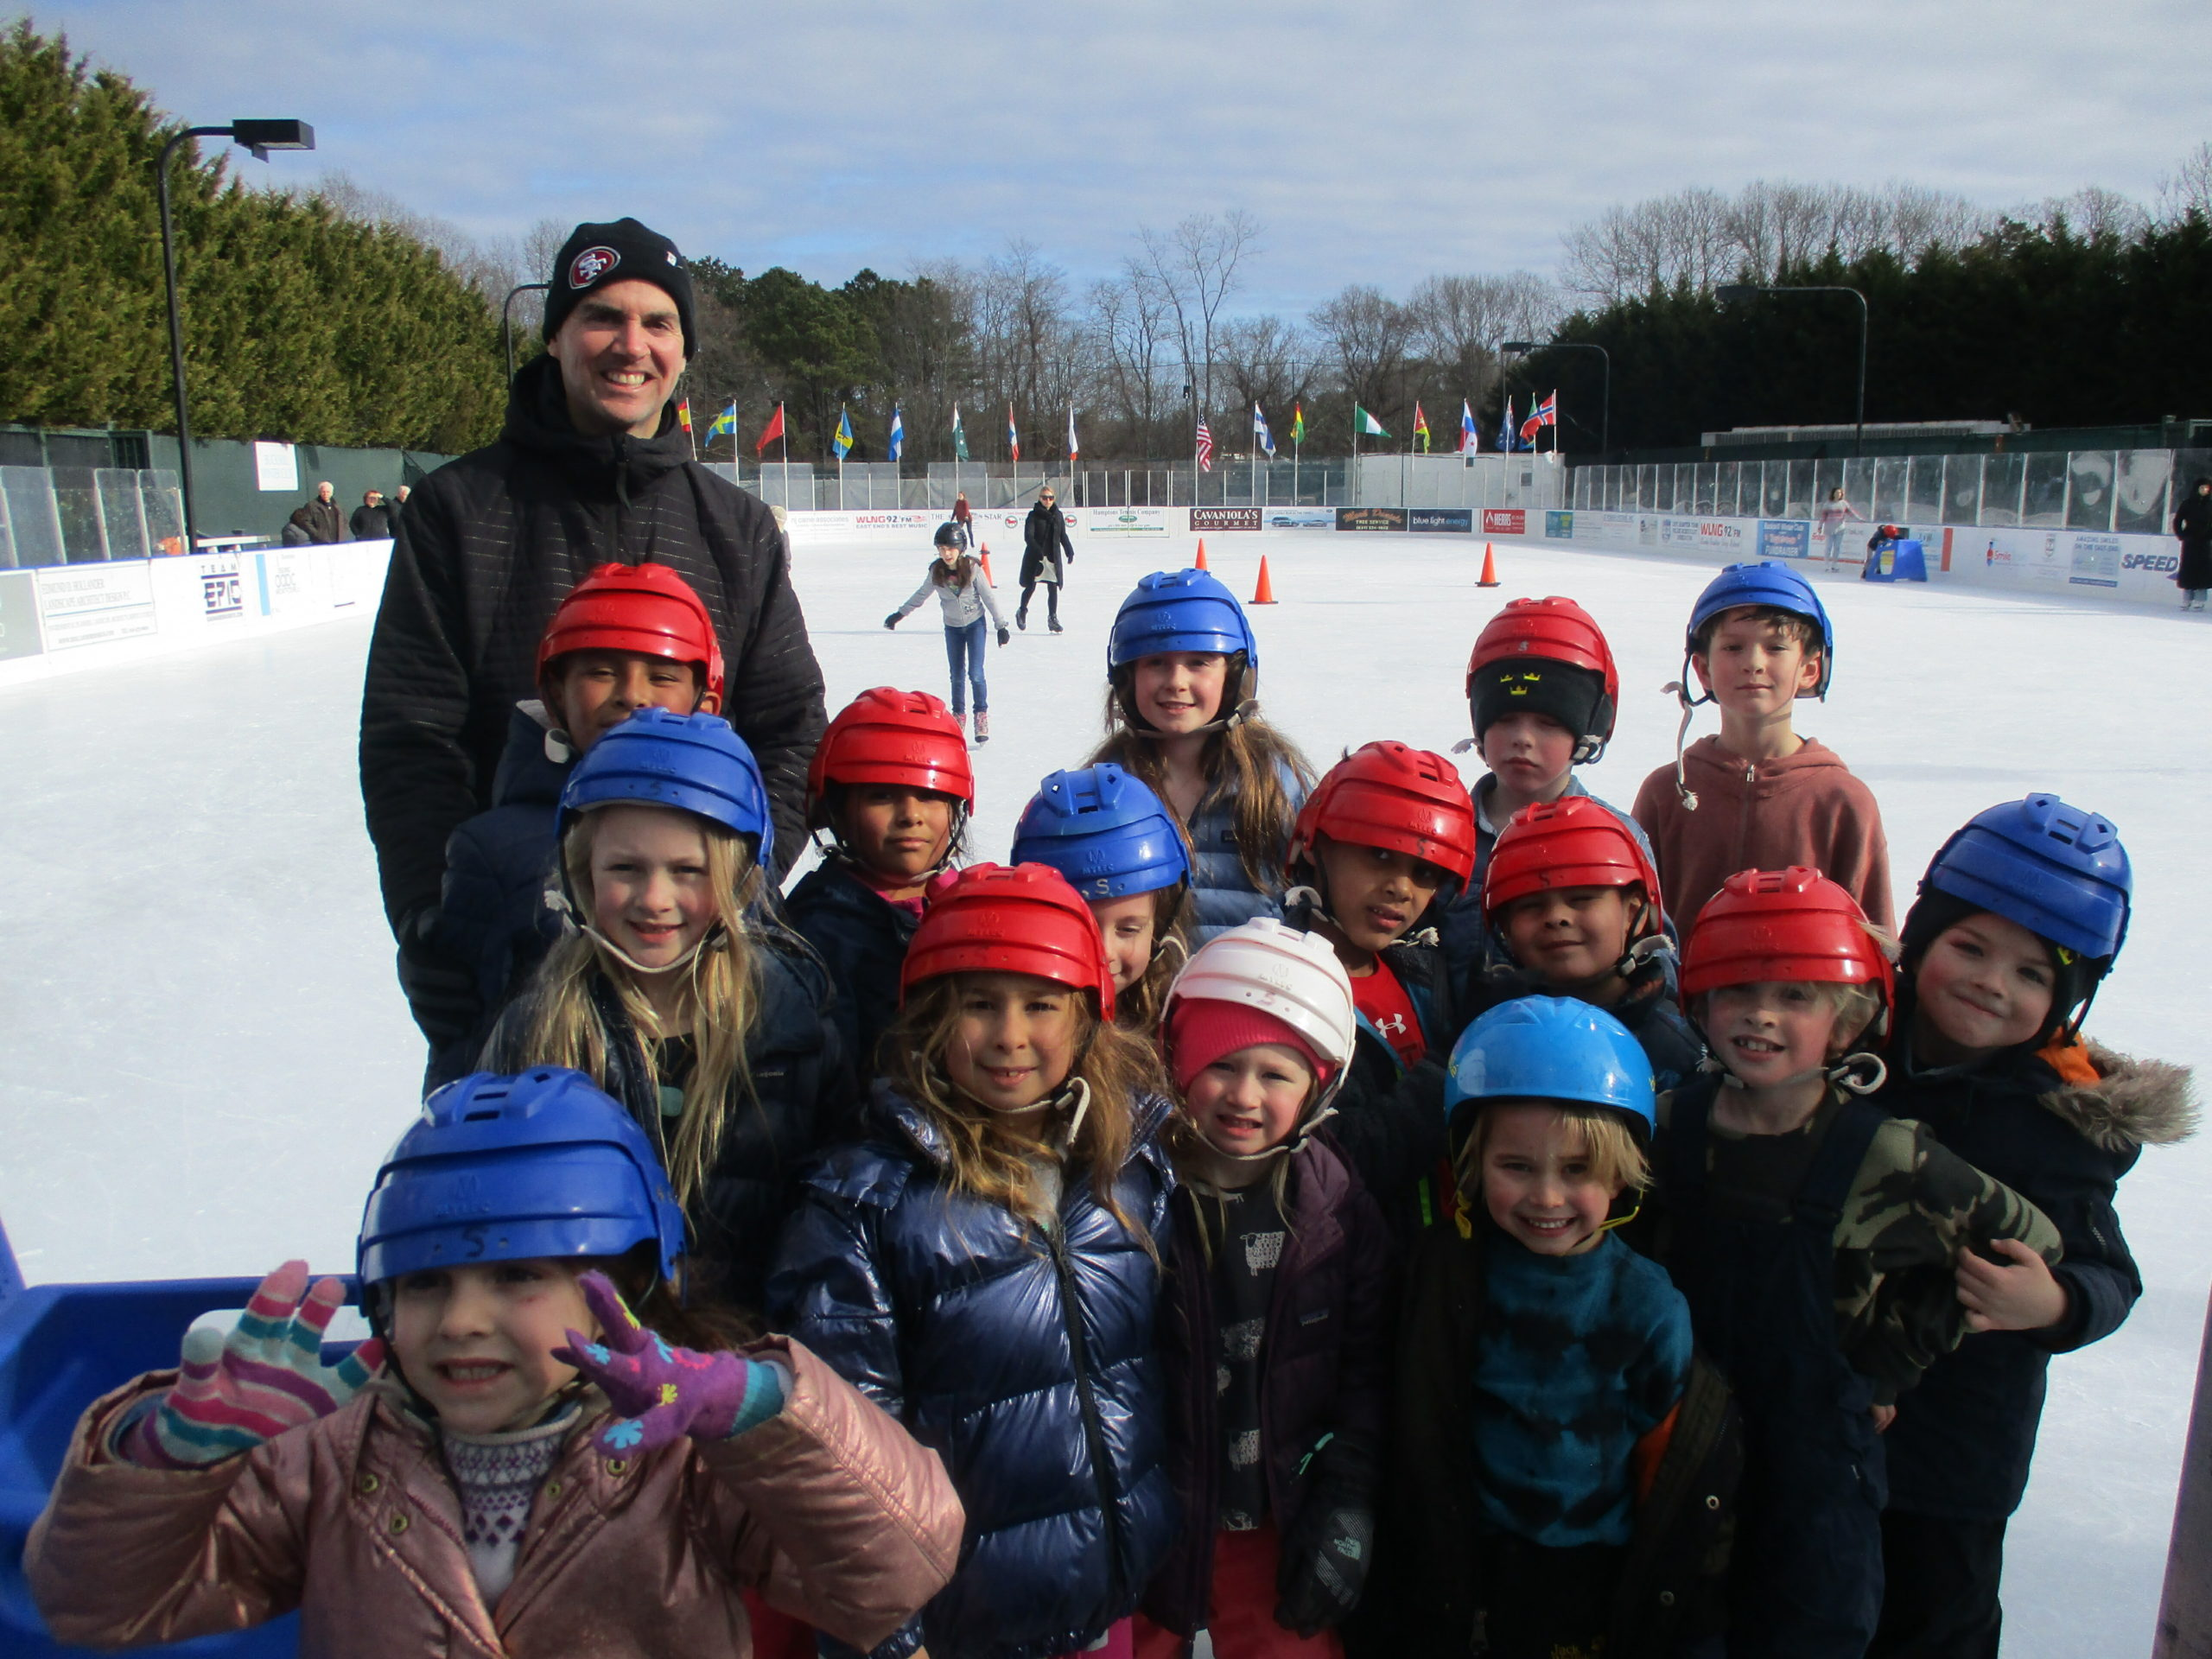 Sagaponack School students get physical education time at the Buckskill Winter Club.